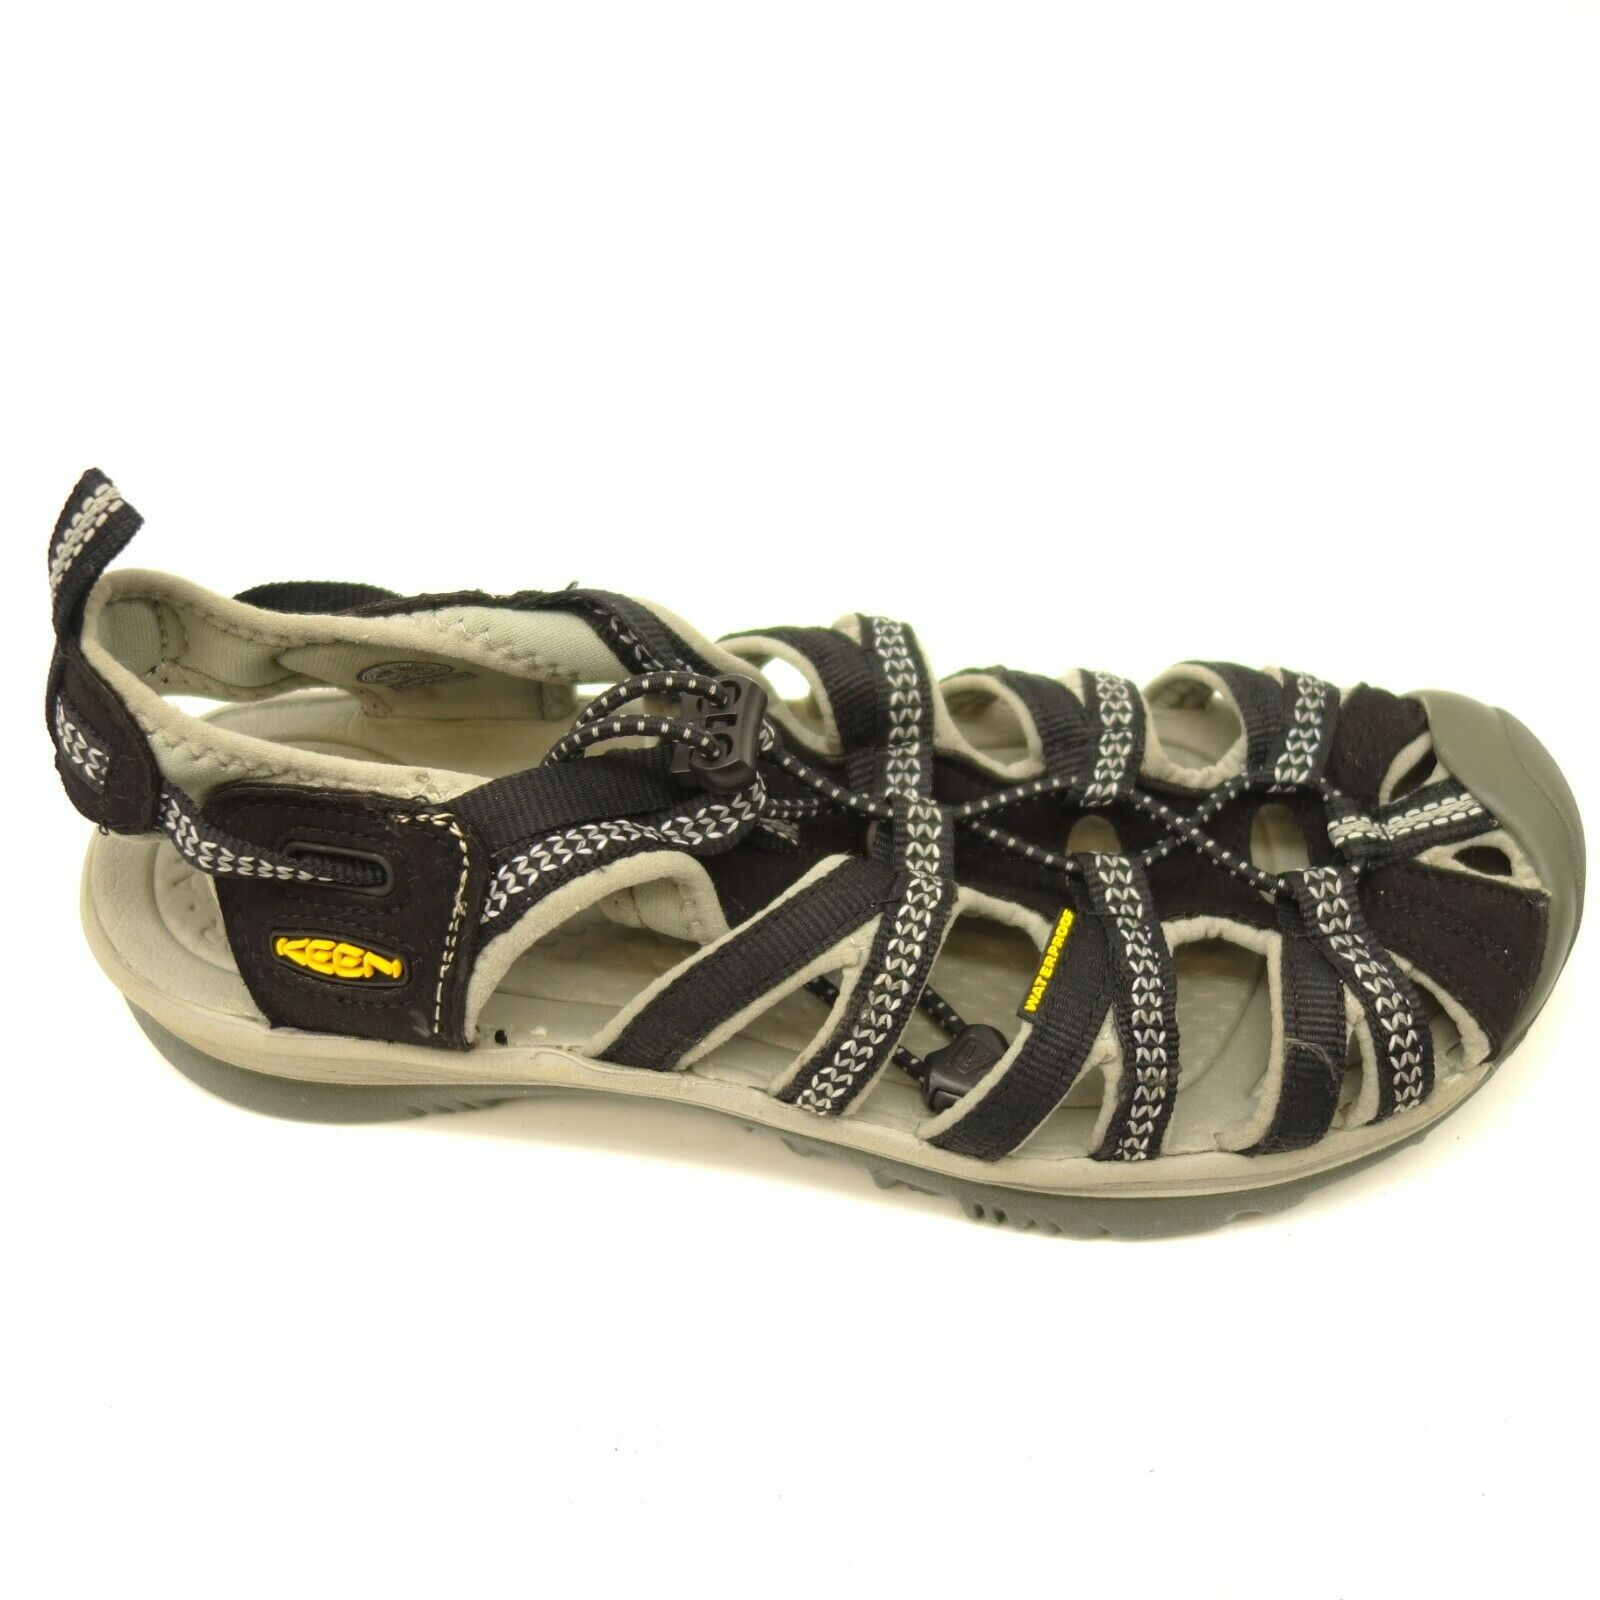 Keen Sport Sandals Whisper US 8 EU 38.5 Bungee Strap Cushioned Womens shoes